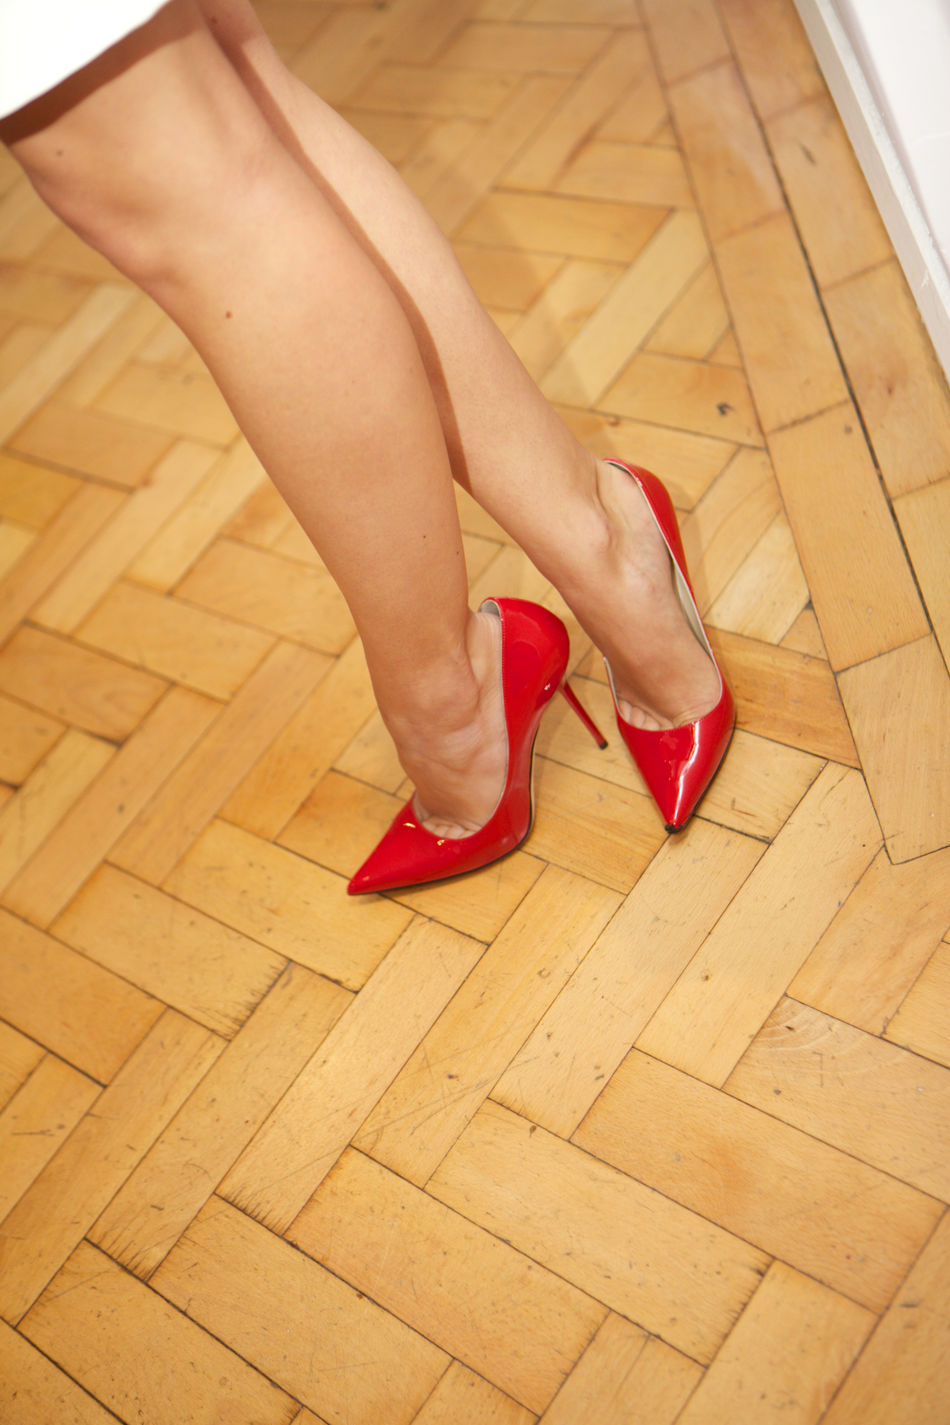 Red stilettos on tanned legs Red Stilettos Red Stilettos Shoes Legs Tanned Legs Tanned Skin Sexygirl